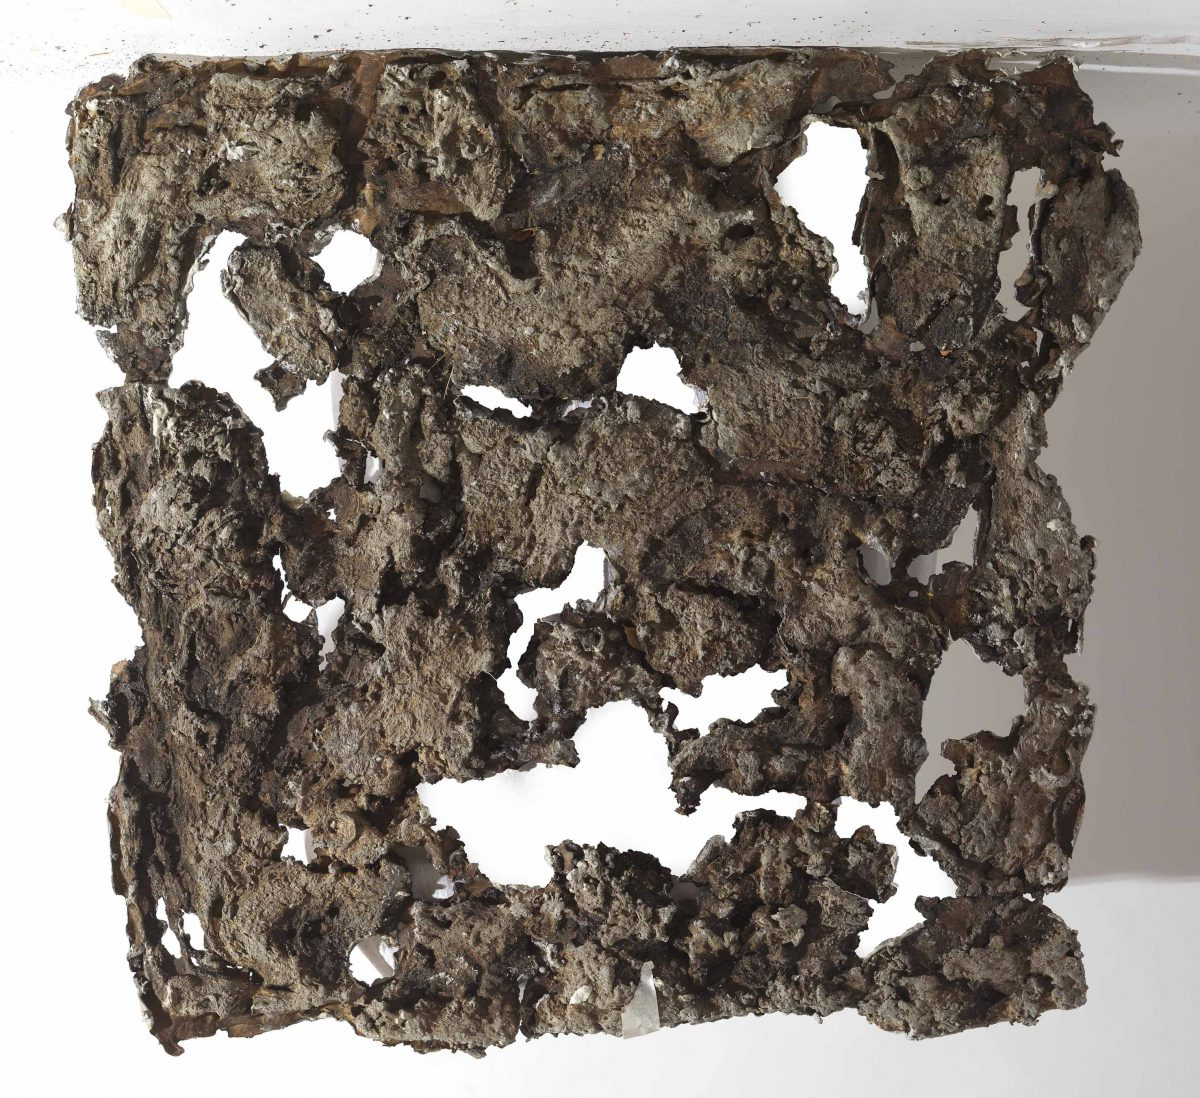 Mixed Media: burned  grey cement -resins. Dimensions 50X50